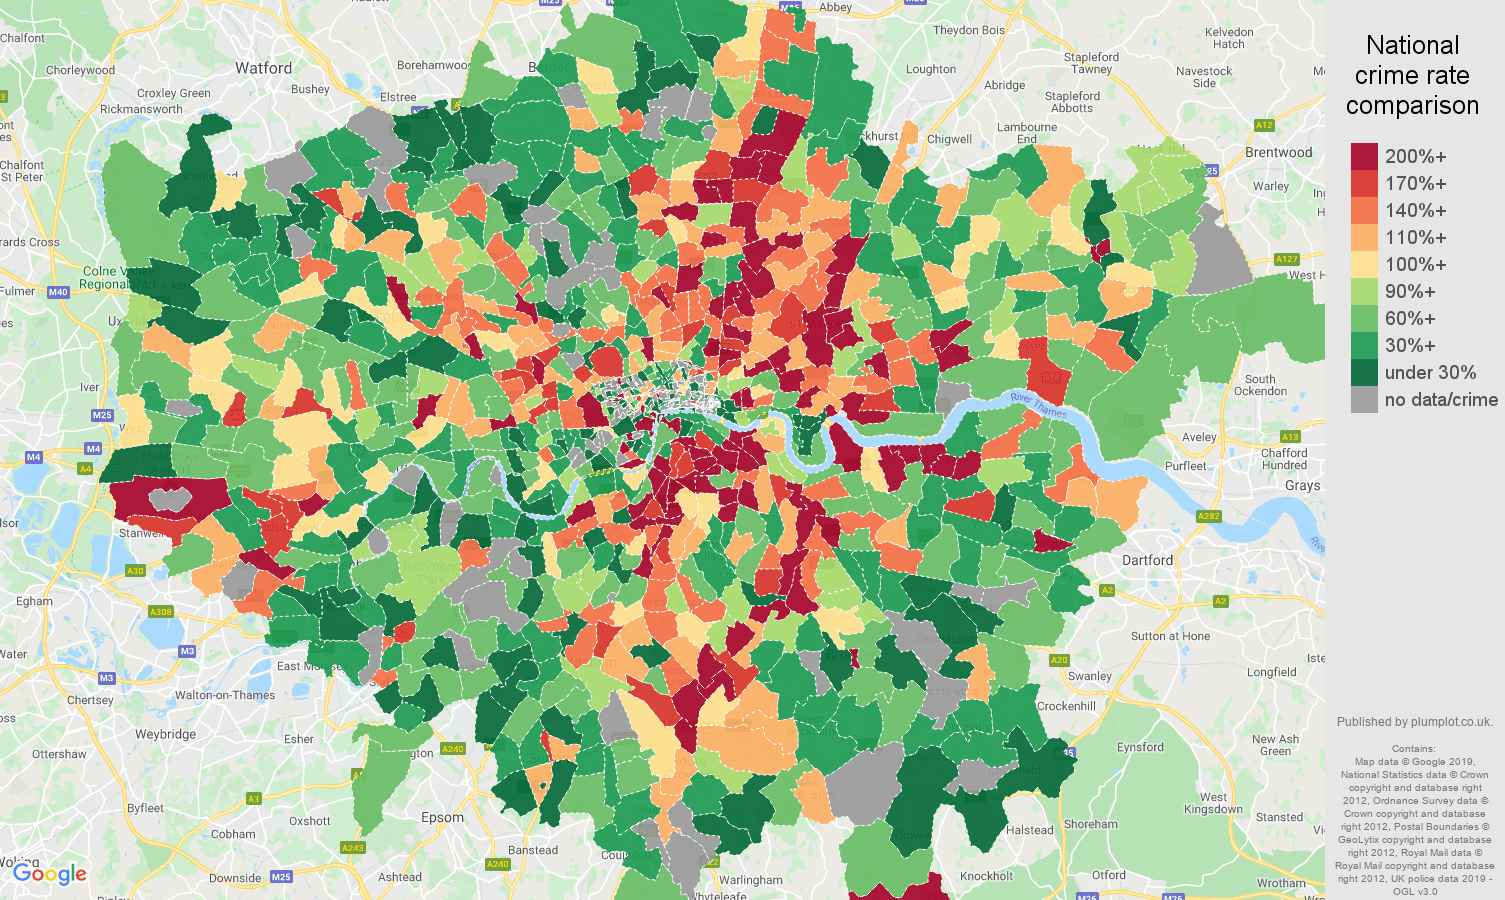 London possession of weapons crime rate comparison map